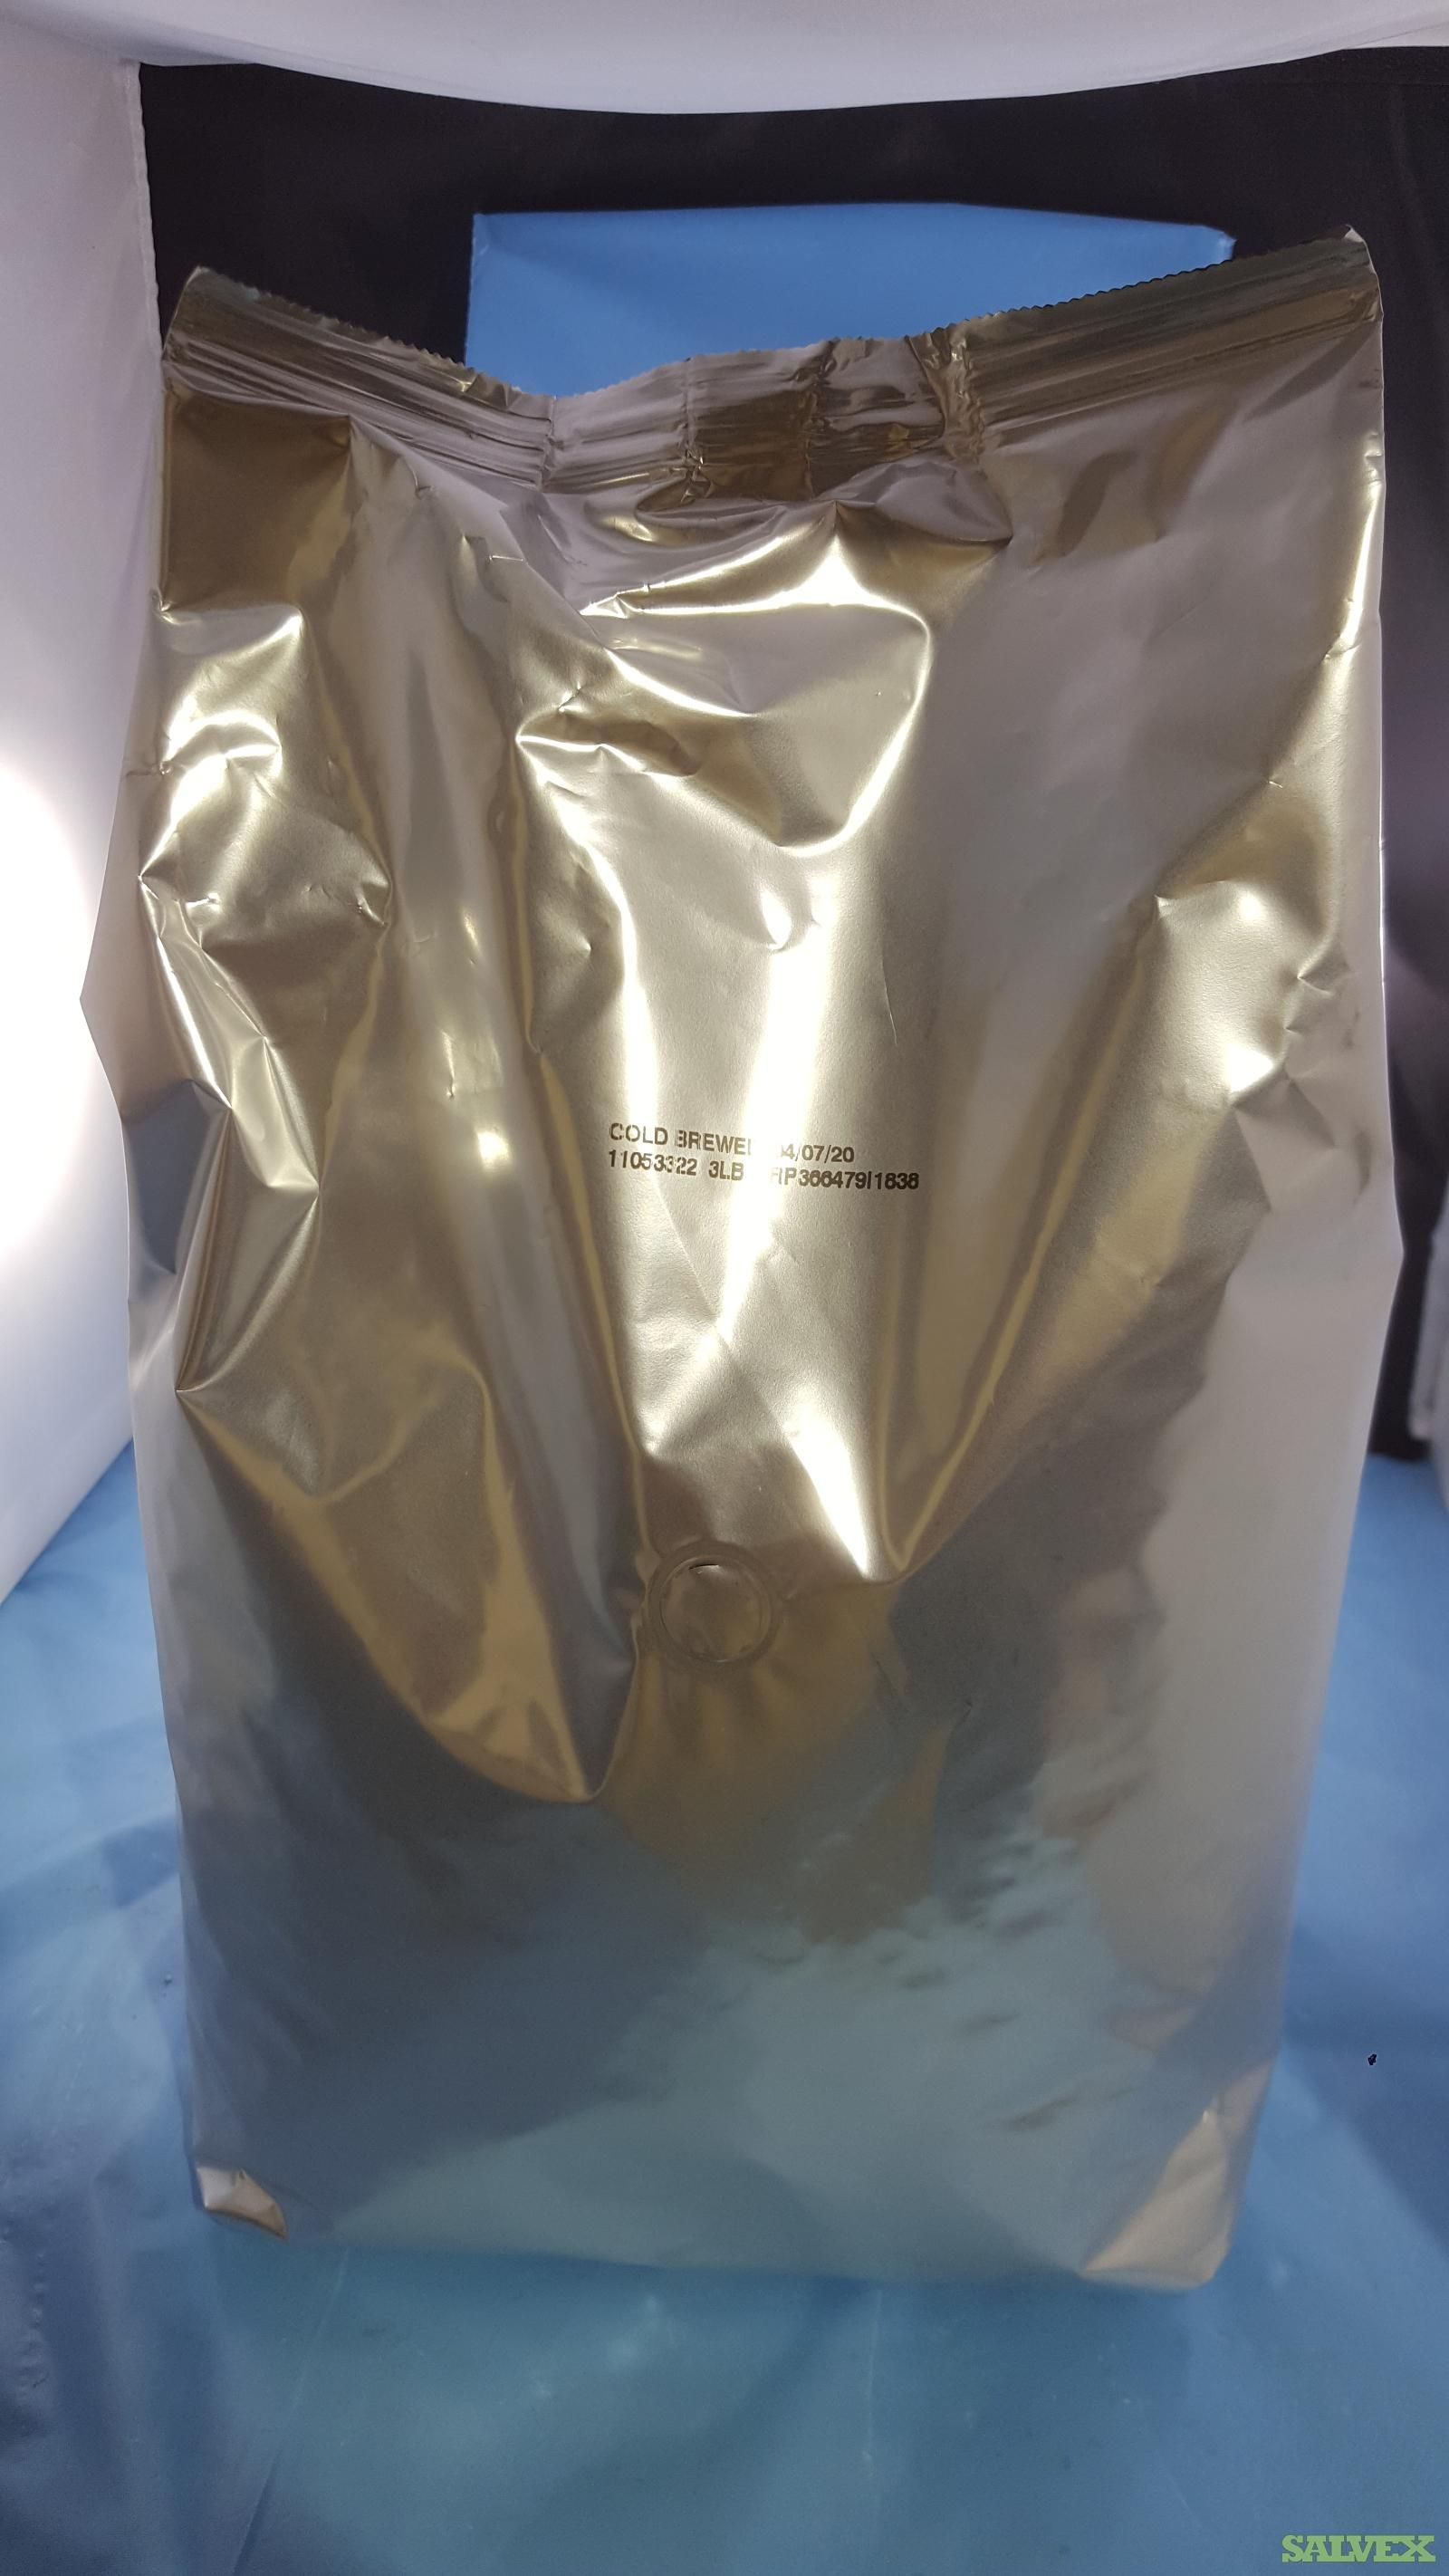 Starbucks Cold Brew Commercial Whole Bean Coffee Bags - Expired (3 Lb Bags - 500 Units)